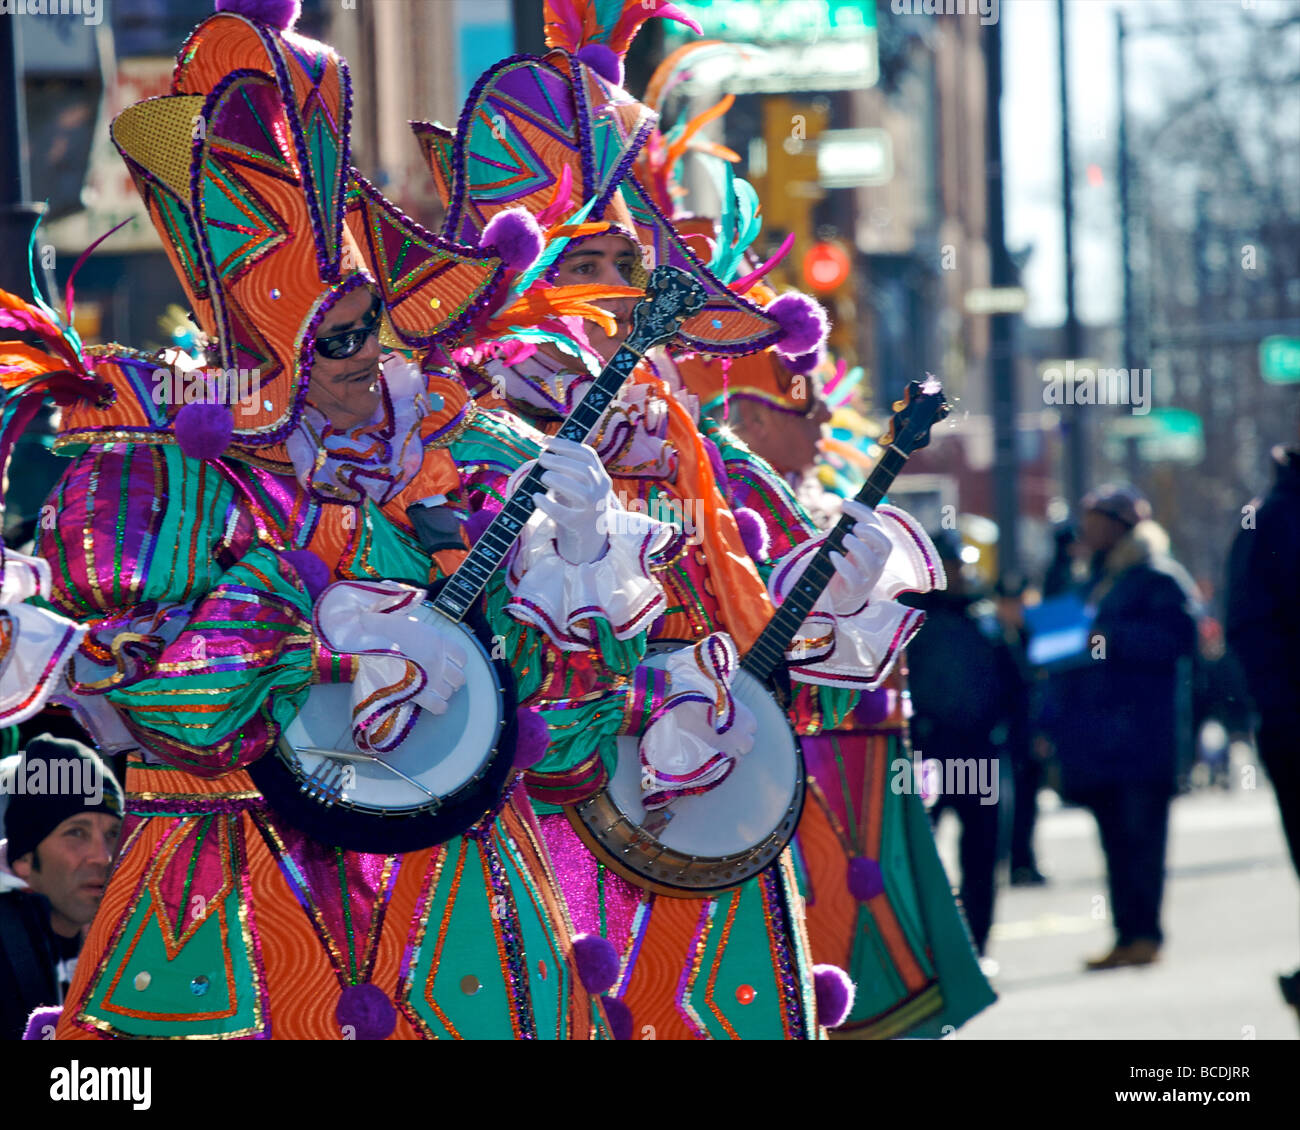 Musicians in the Philadelphia Mummers New Year's parade - Stock Image